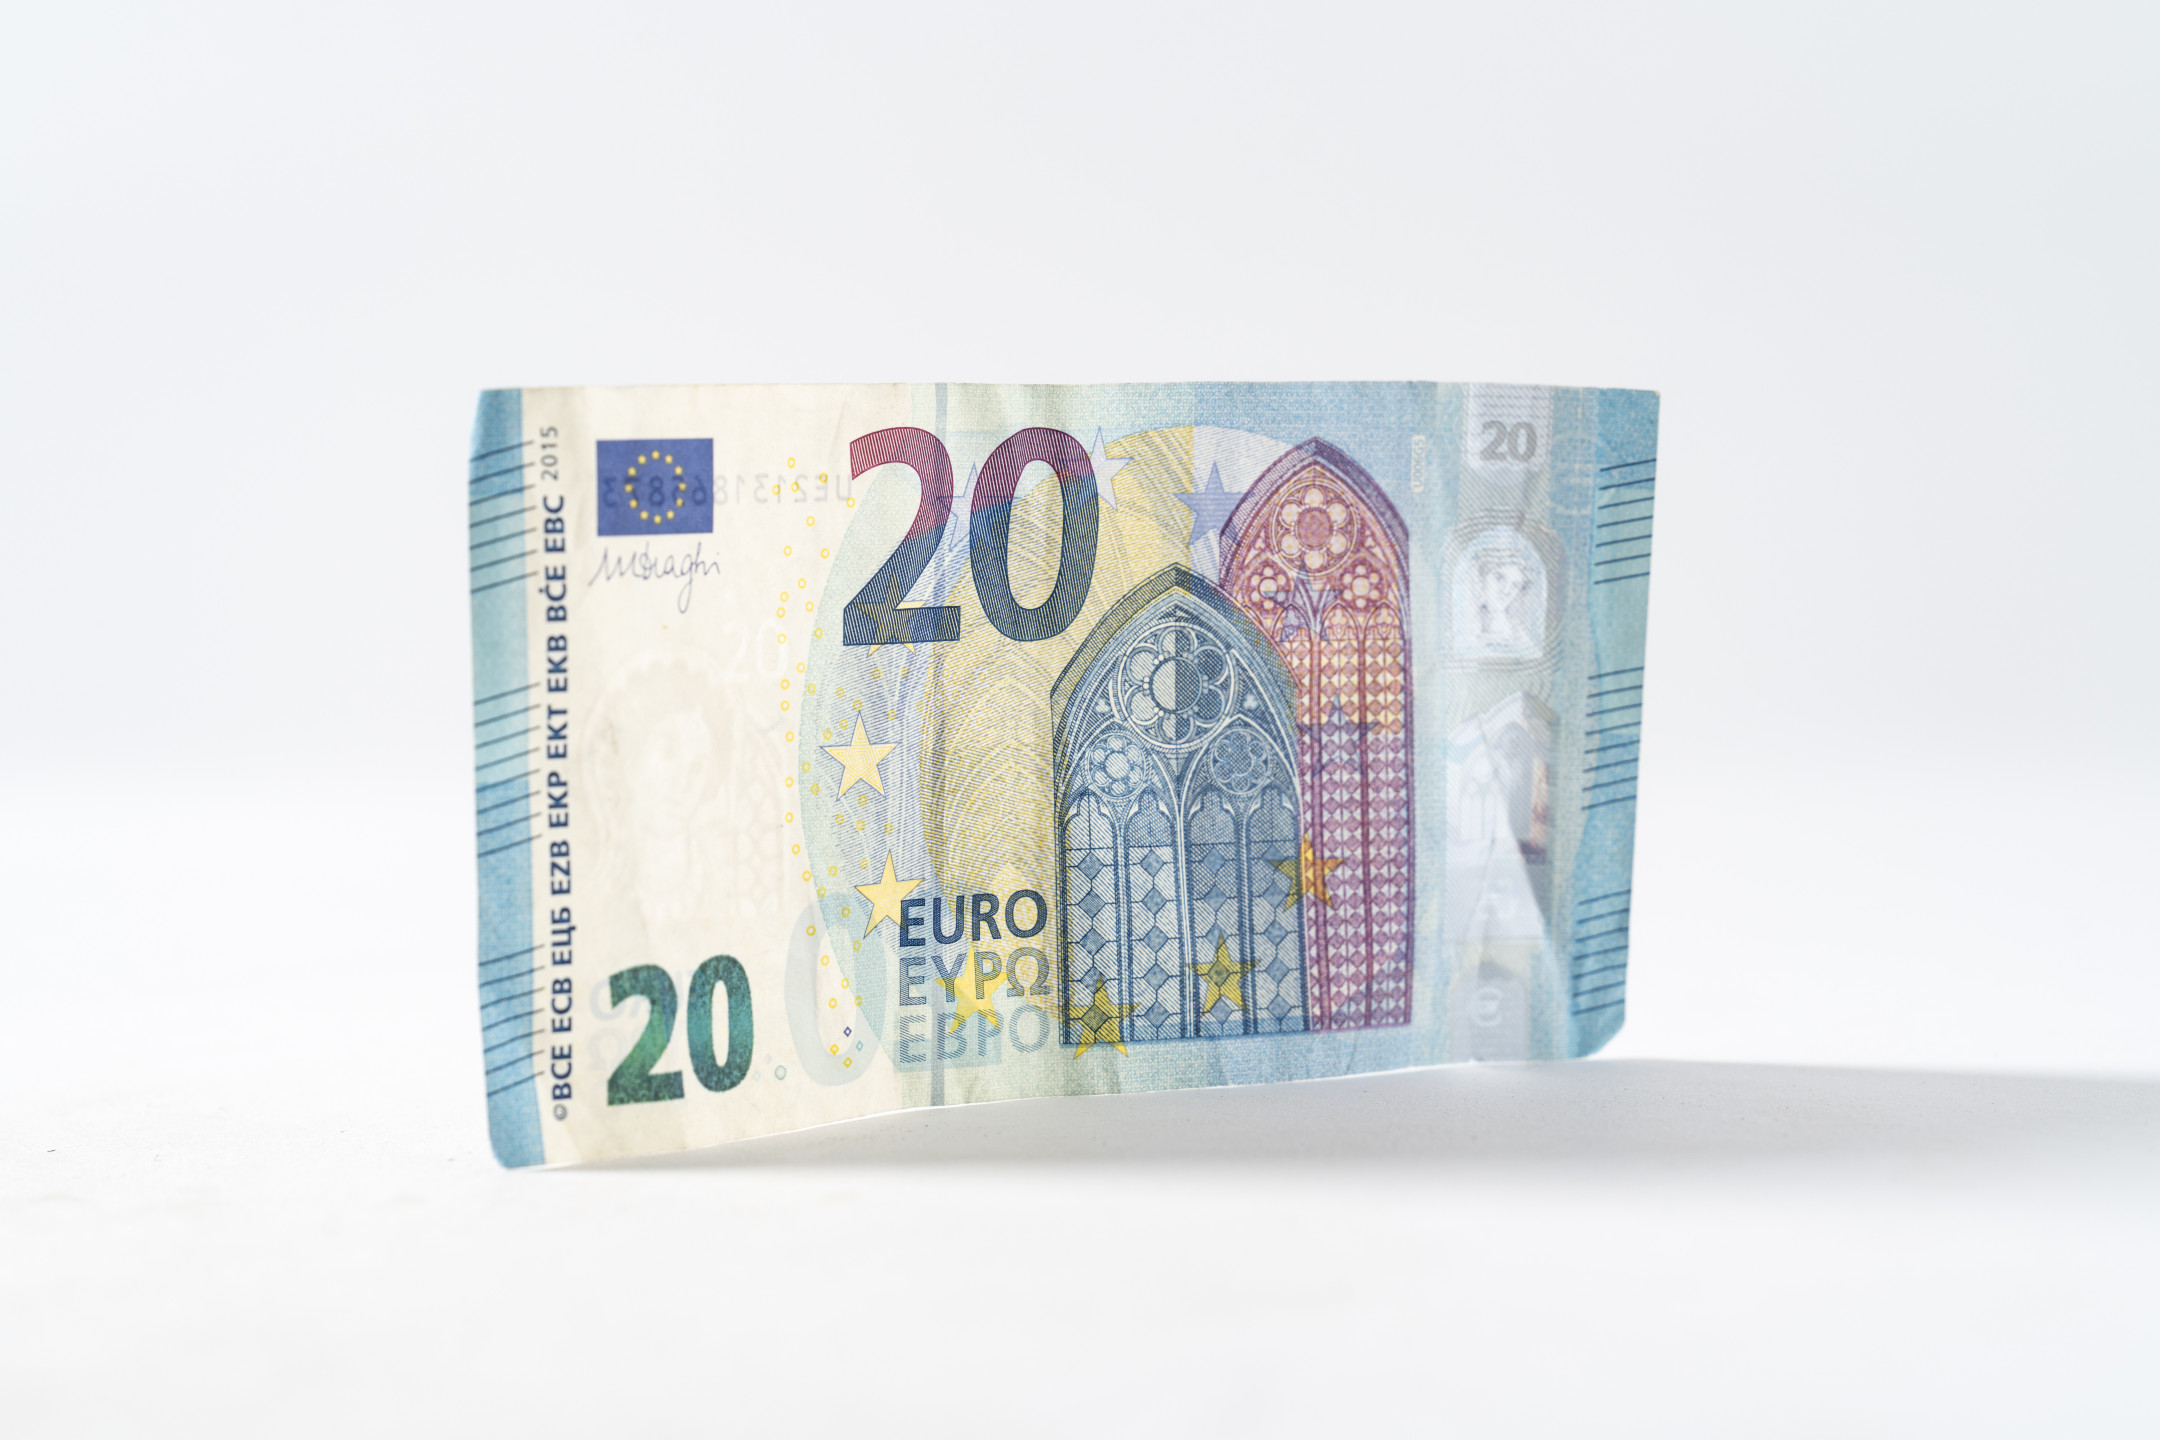 Euro recovers higher above 1.1250 against USD